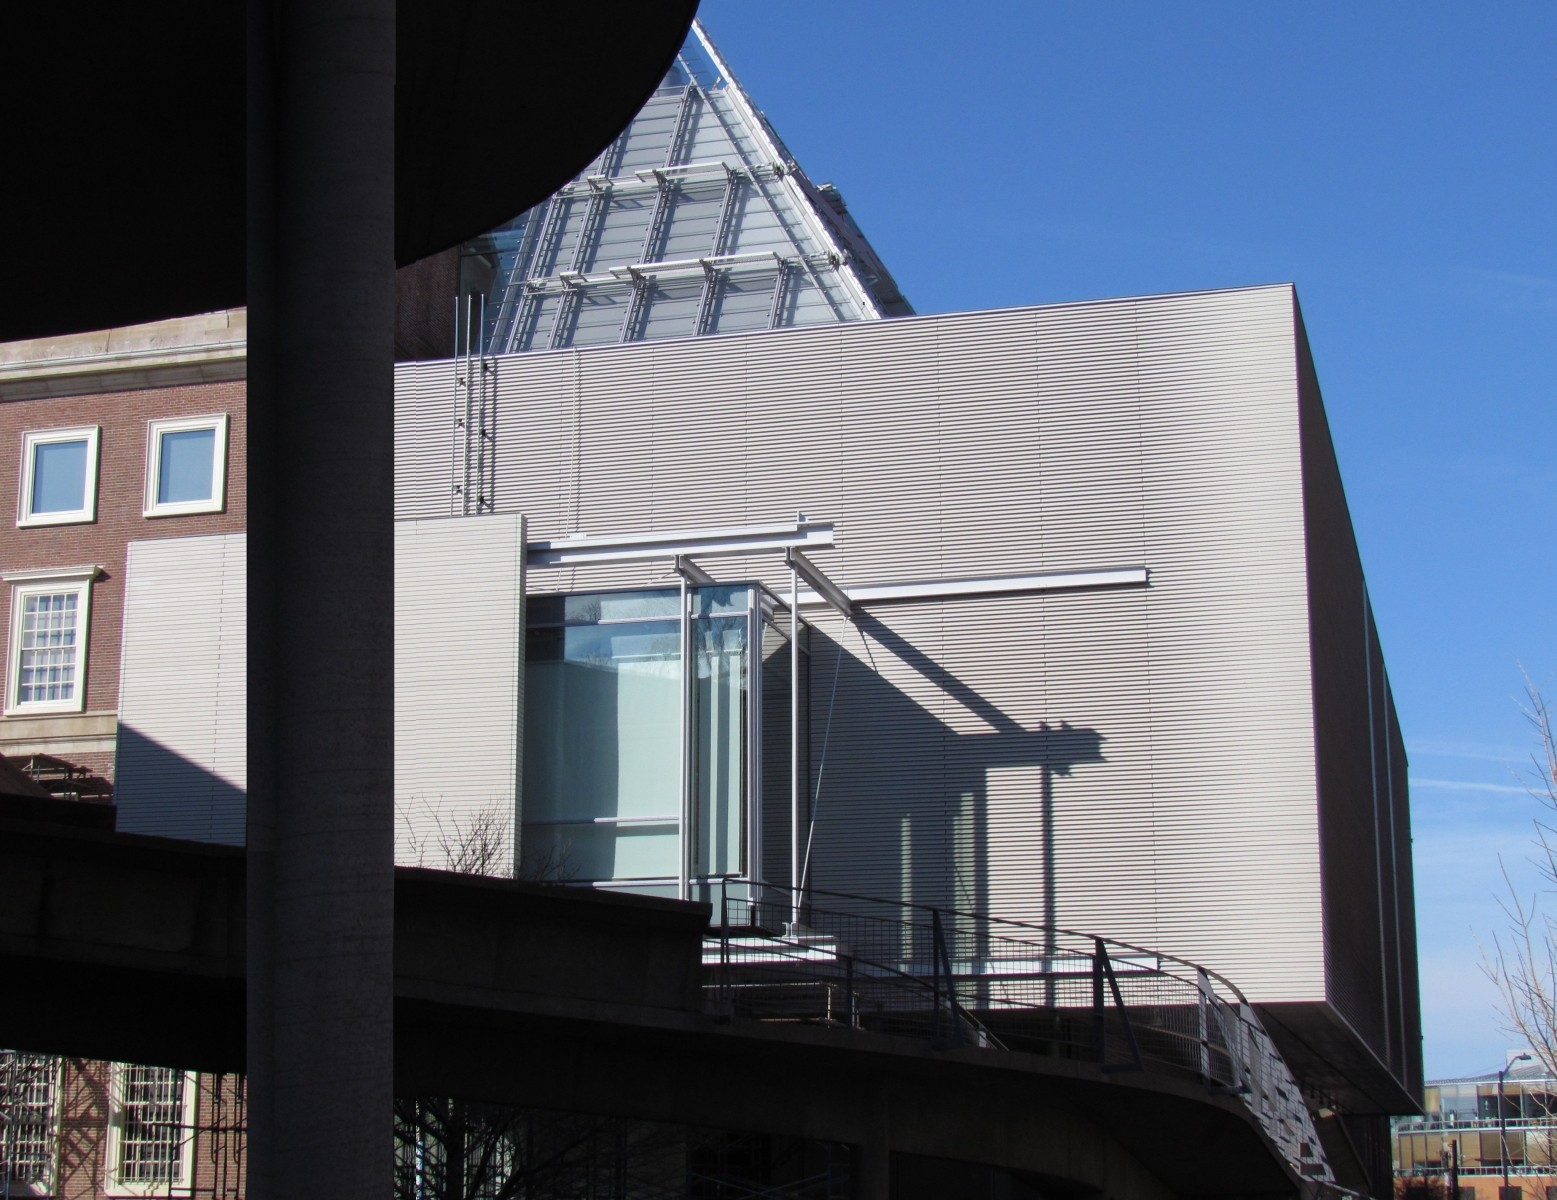 Piano's new wing for the Harvard Art Museums, with the curving ramp of Le Corbusier's Carpenter Center in the foreground. Image © Paul Clemence